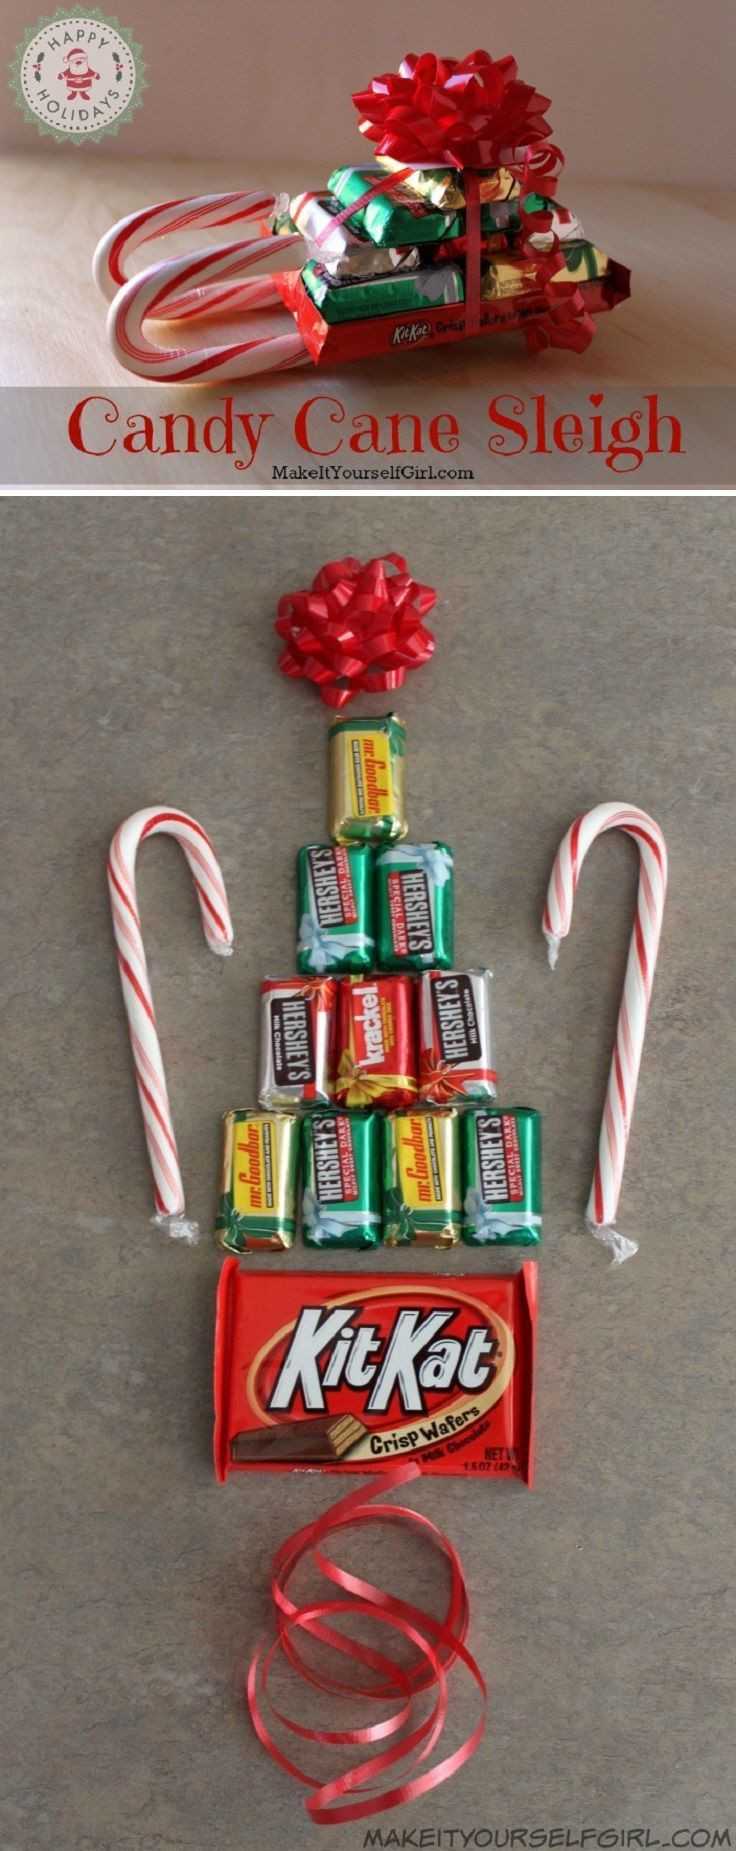 Candy Cane Crafts For Christmas  Best 25 Christmas party favors ideas on Pinterest